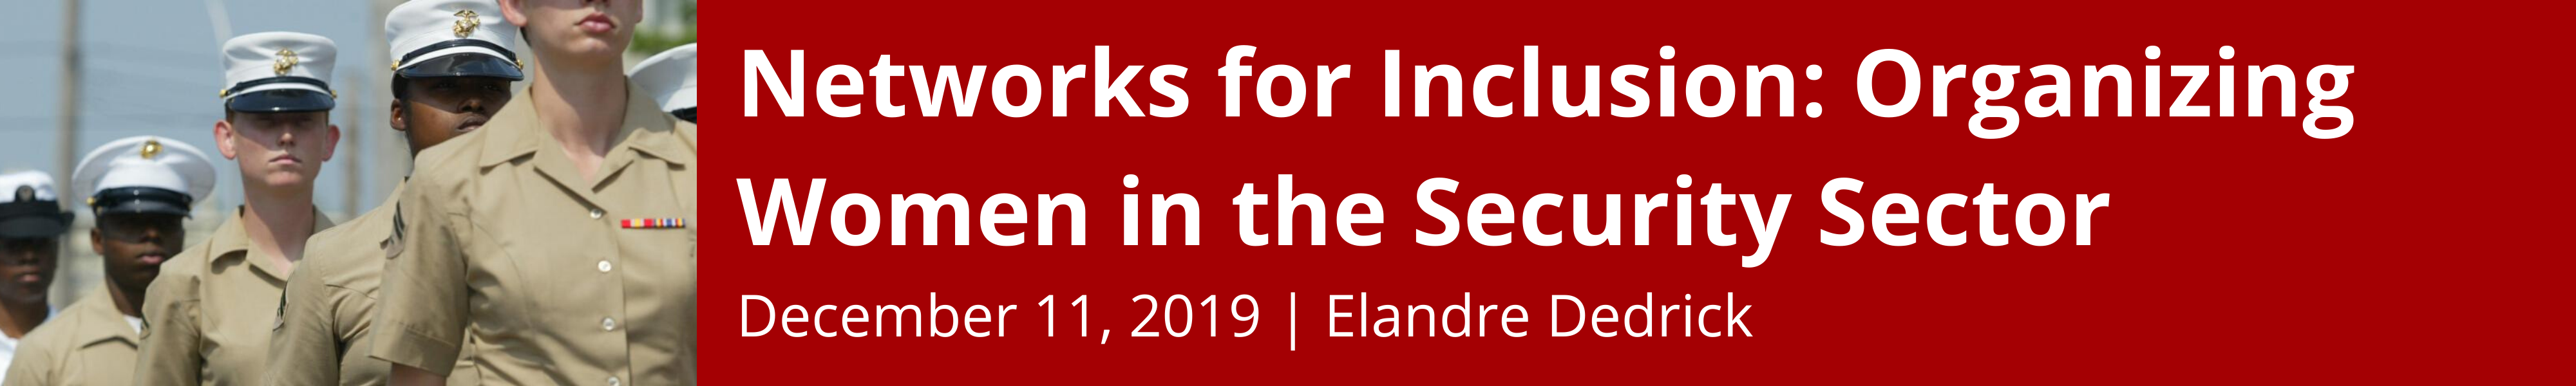 Networks for Inclusion: Organizing Women in the Security Sector : December 11, 2019; Elandre Dedrick